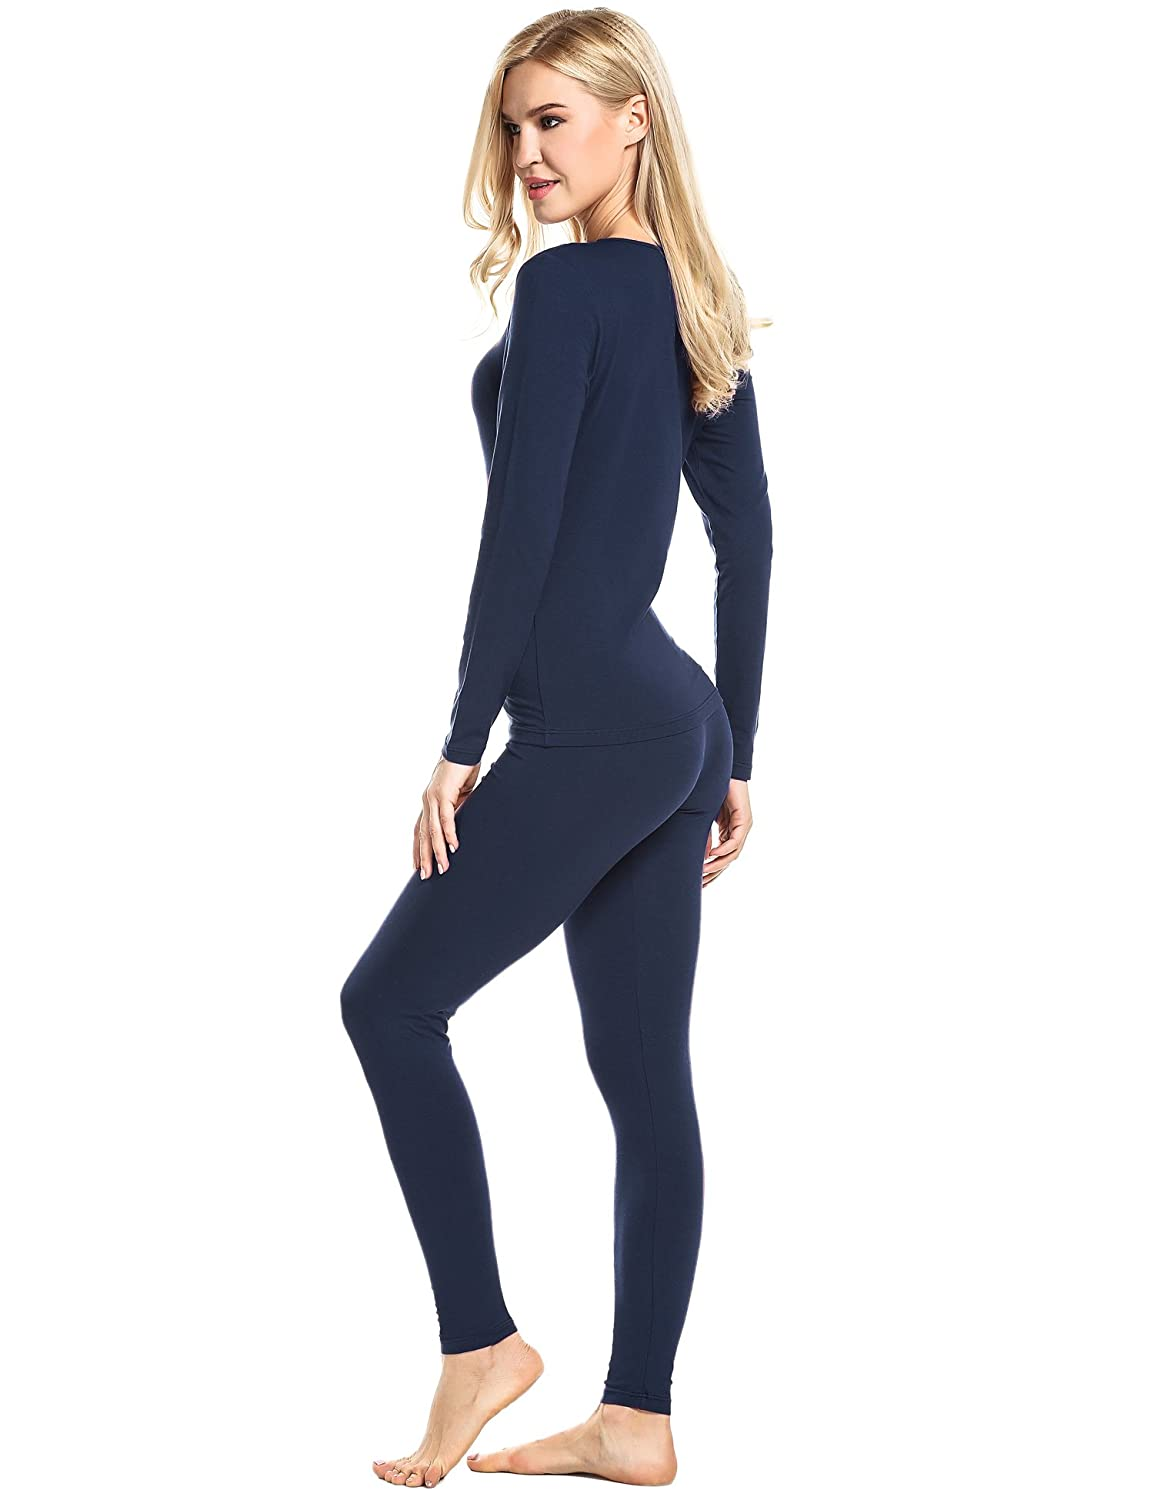 ADOME Damen Baumwolle Thermounterw/äsche Set mit Fleece//ohne Fleece Thermo-Unterw/äsche Set